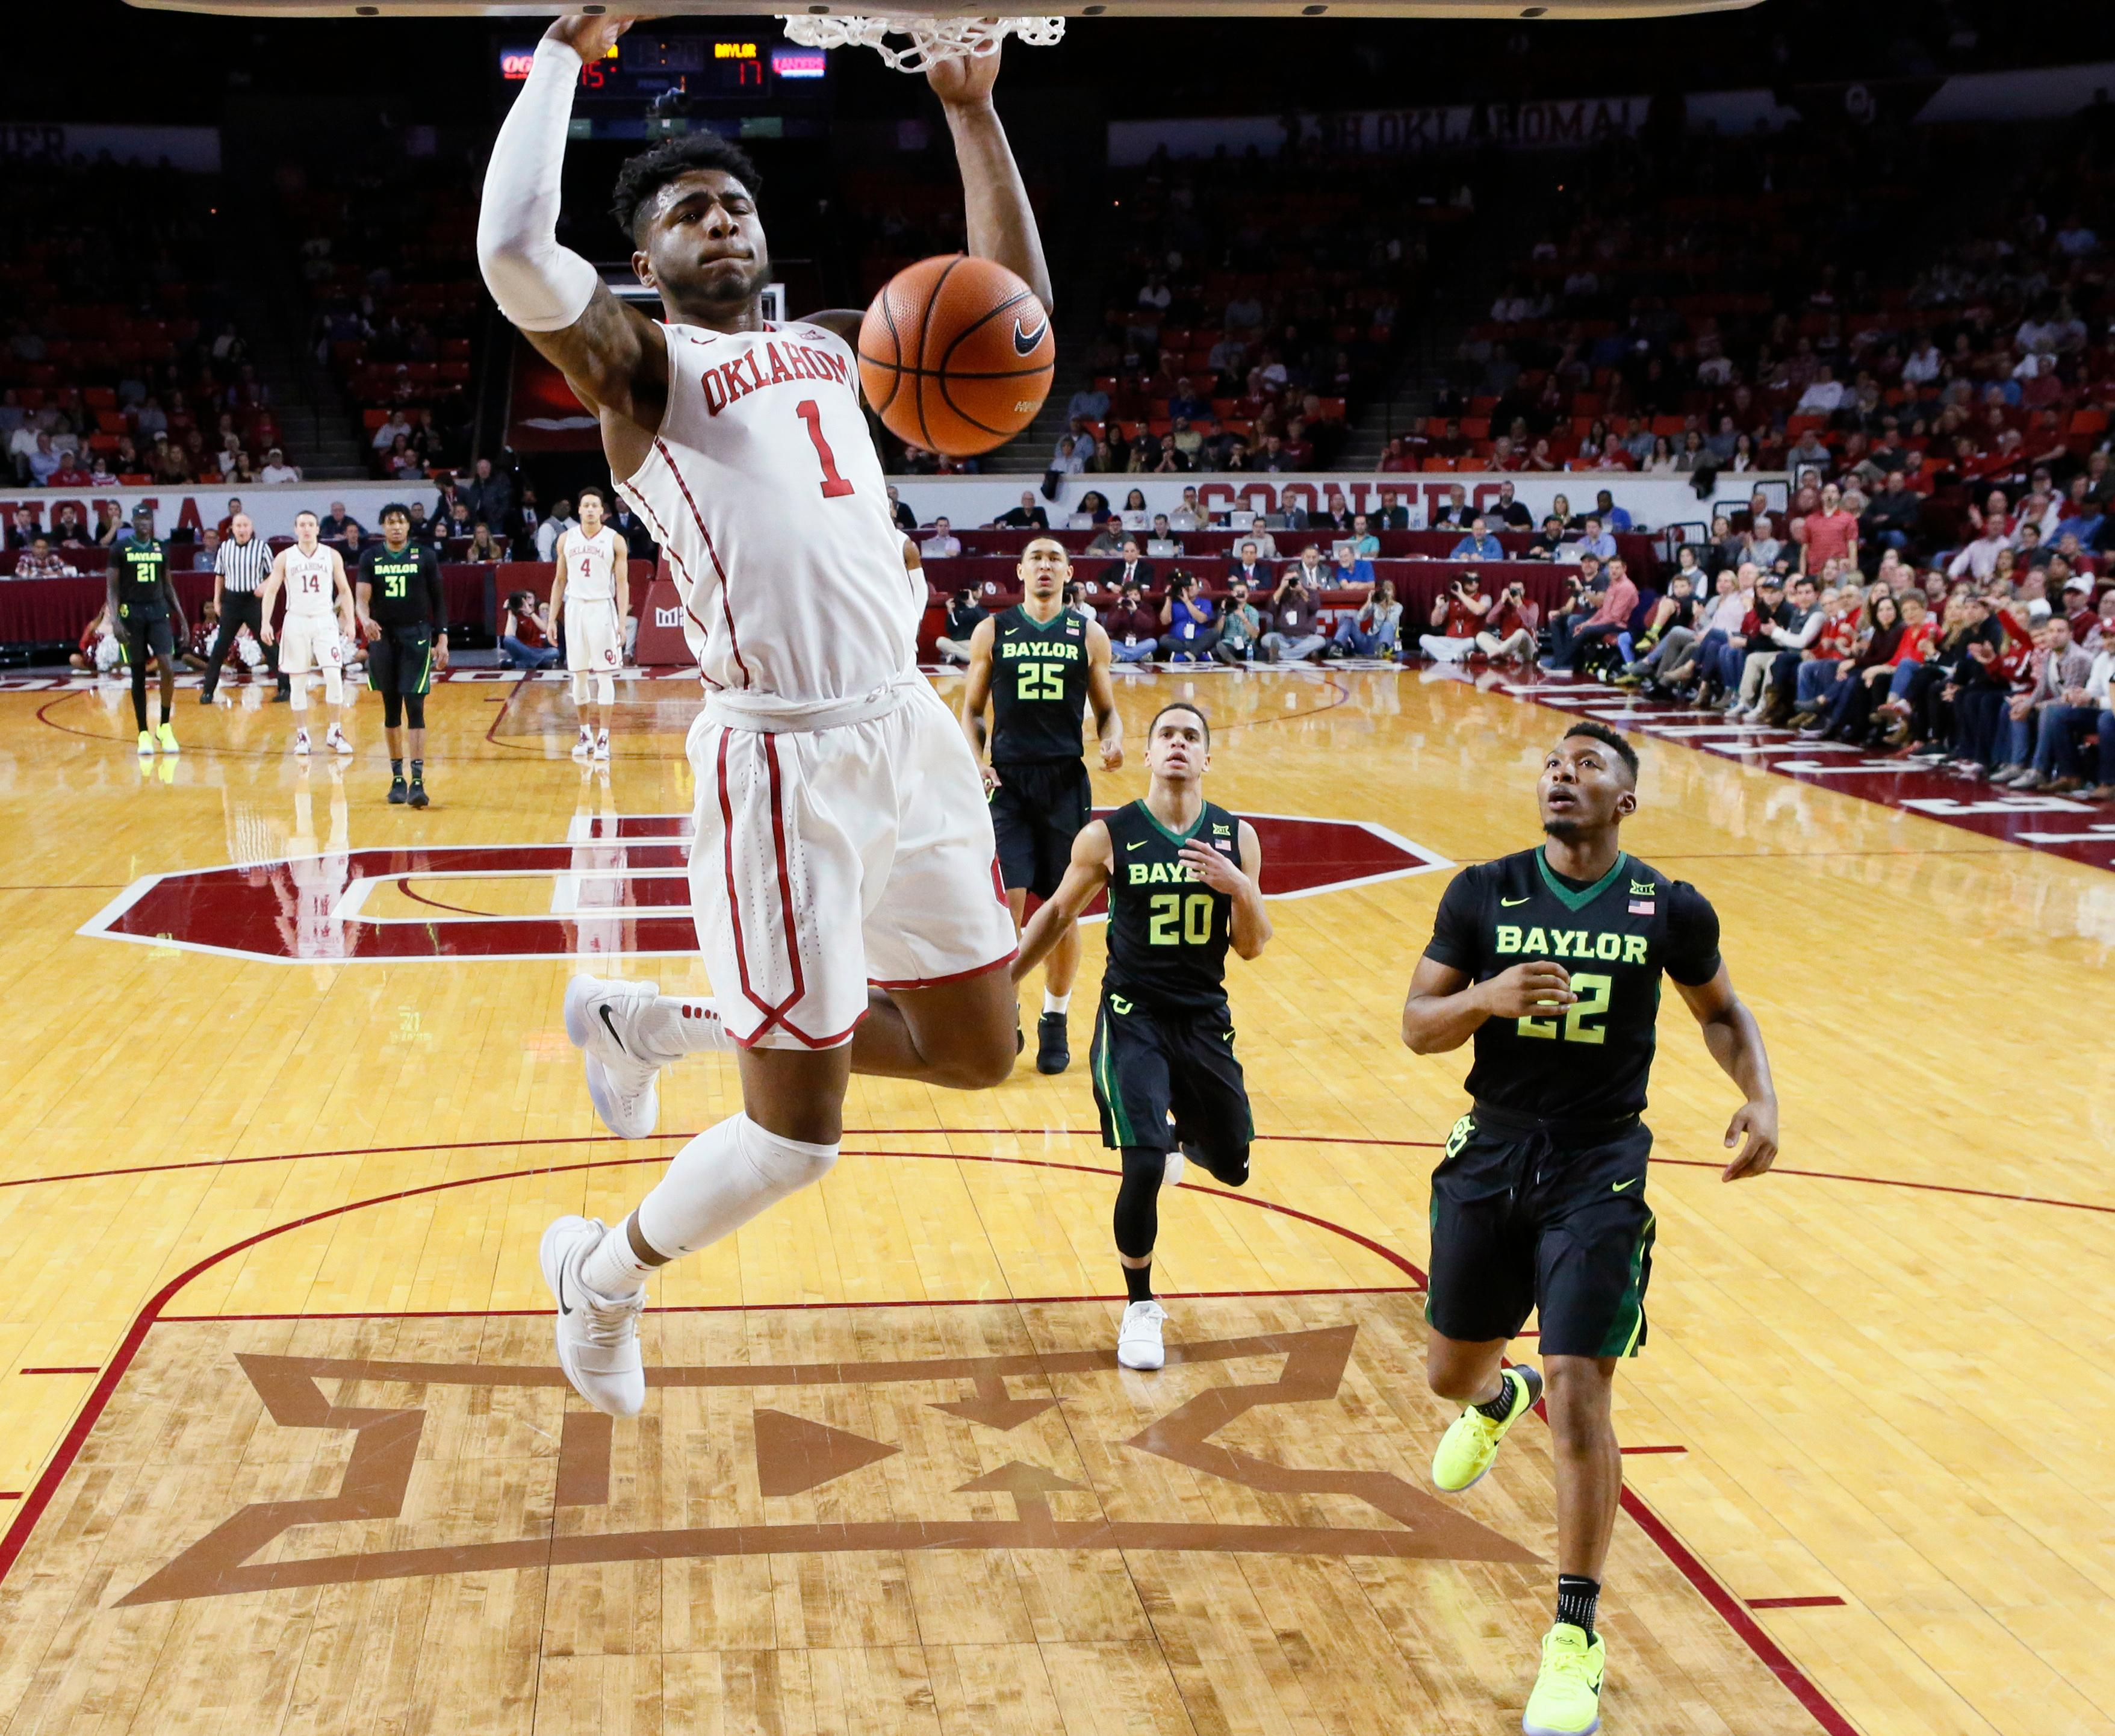 Oklahoma guard Rashard Odomes (1) dunks in front of Baylor guard Manu Lecomte (20) and guard King McClure (22) during the first half of an NCAA college basketball game in Norman, Okla., Tuesday, Jan. 30, 2018. (AP Photo/Sue Ogrocki)